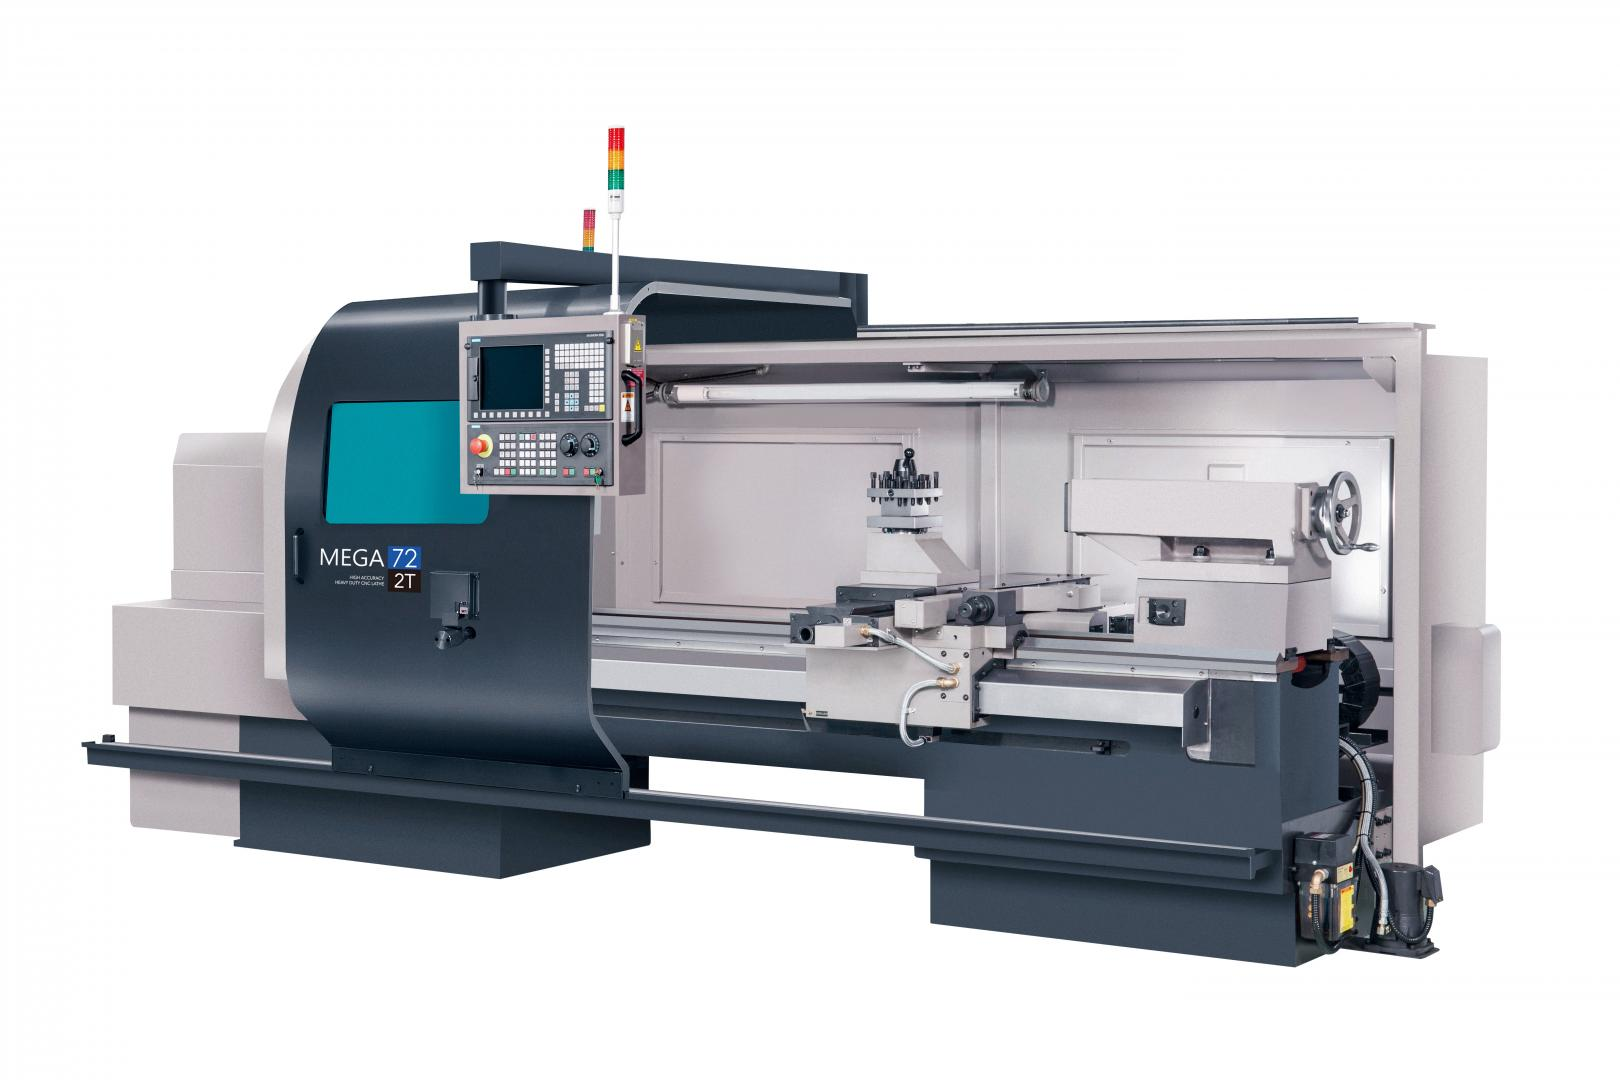 MEGA-72 - Flat bed lathe with a swing diameter of Ø720 mm (cycle